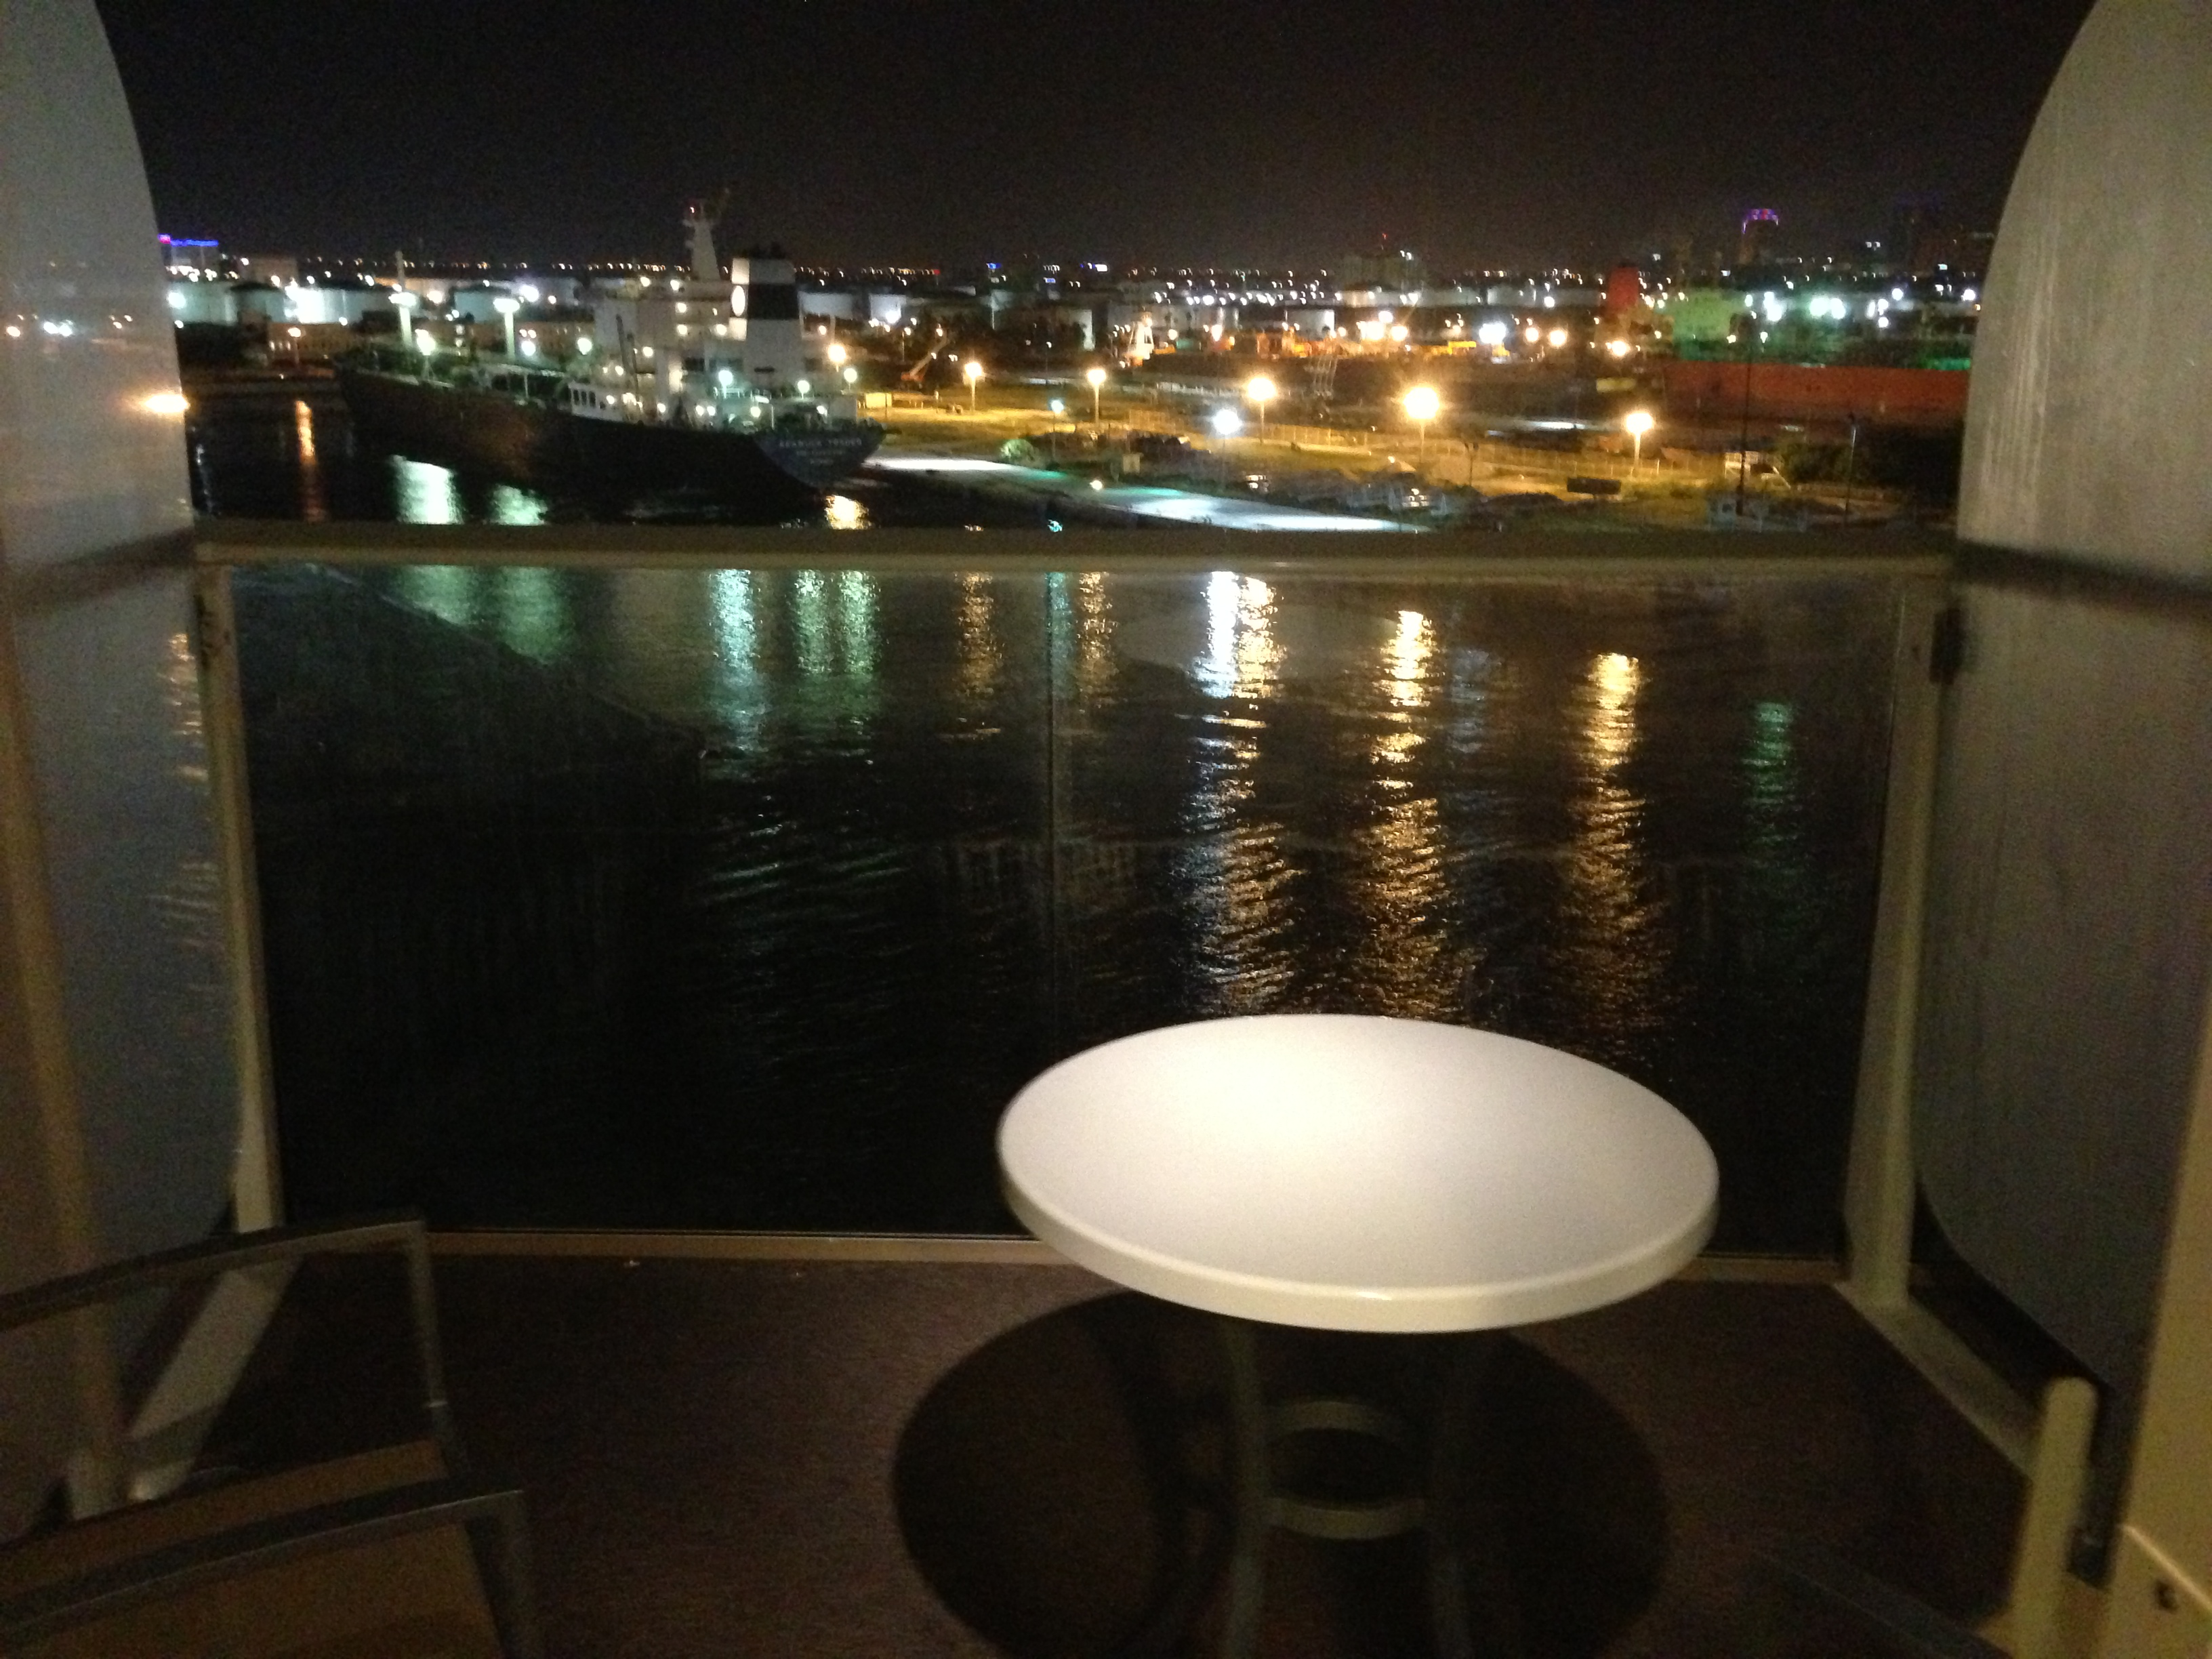 Royal caribbean oasis of the seas cruise review for cabin 9604 for Balcony at night